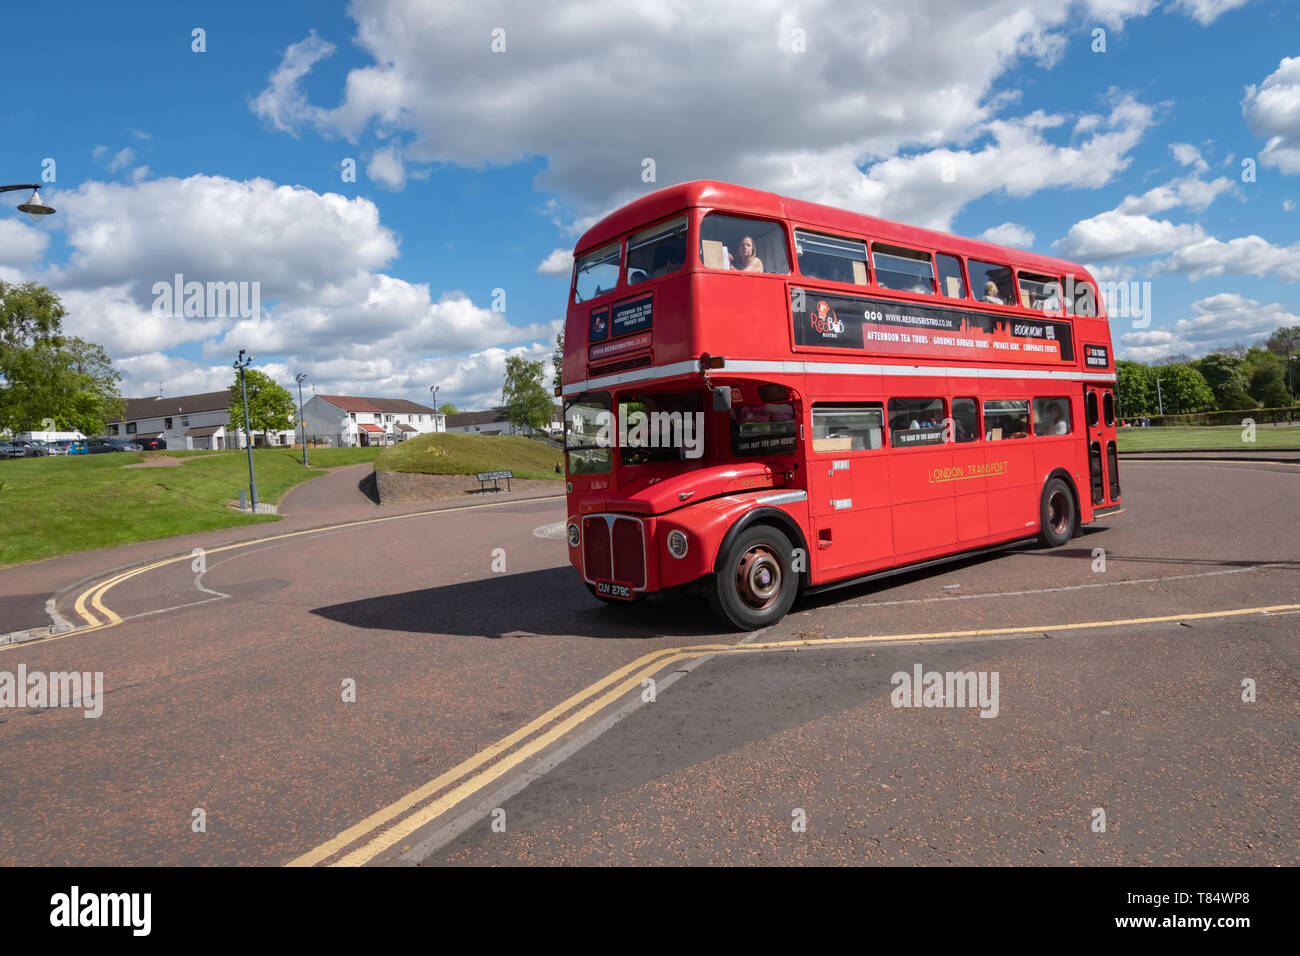 Glasgow, Scotland, UK. 11th May, 2019. UK Weather. A vintage 1966 Routemaster Bus used by the company Red Bus Bistro in Glasgow Green giving gourmet food and drink tours around Glasgow. Credit: Skully/Alamy Live News - Stock Image